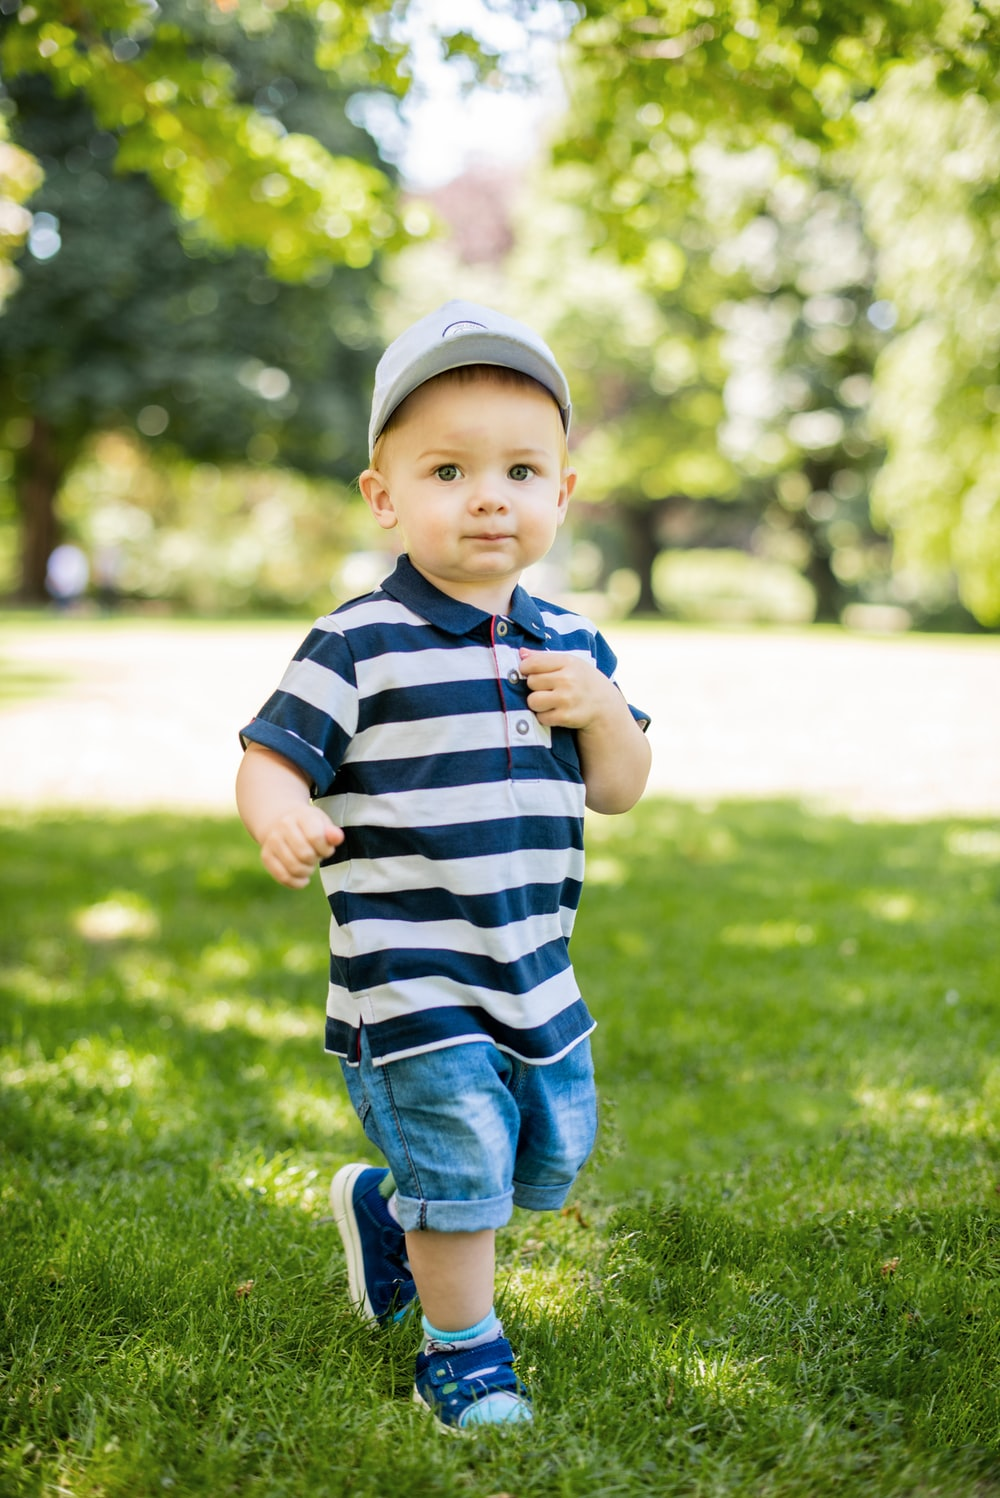 child in blue and white striped shirt and blue denim jeans standing on green grass field